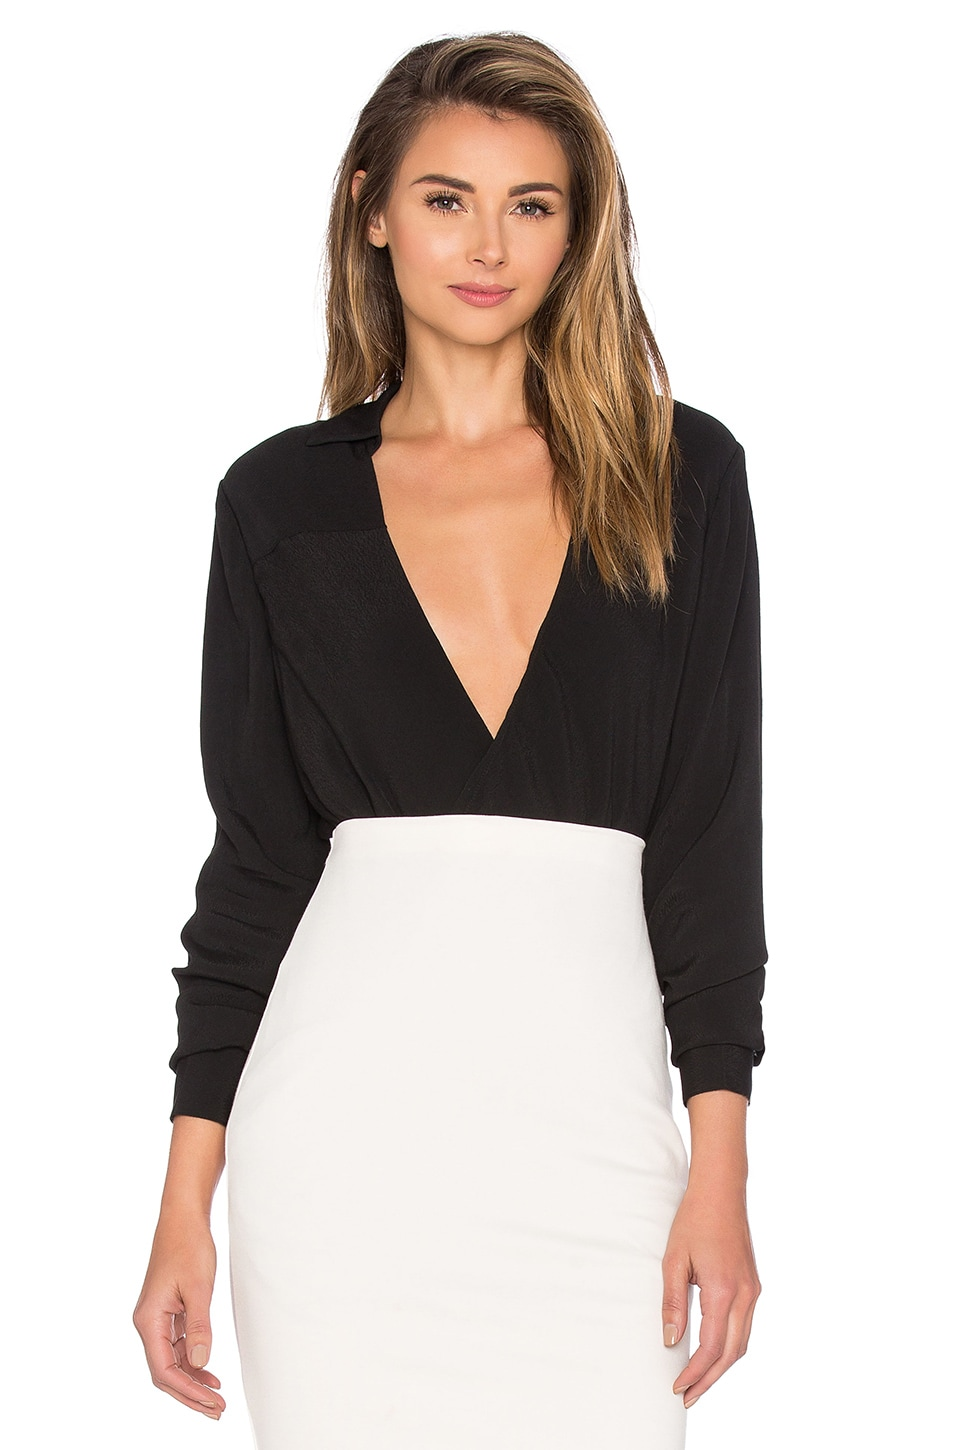 TY-LR The Catherine Long Sleeve Shirt in Black